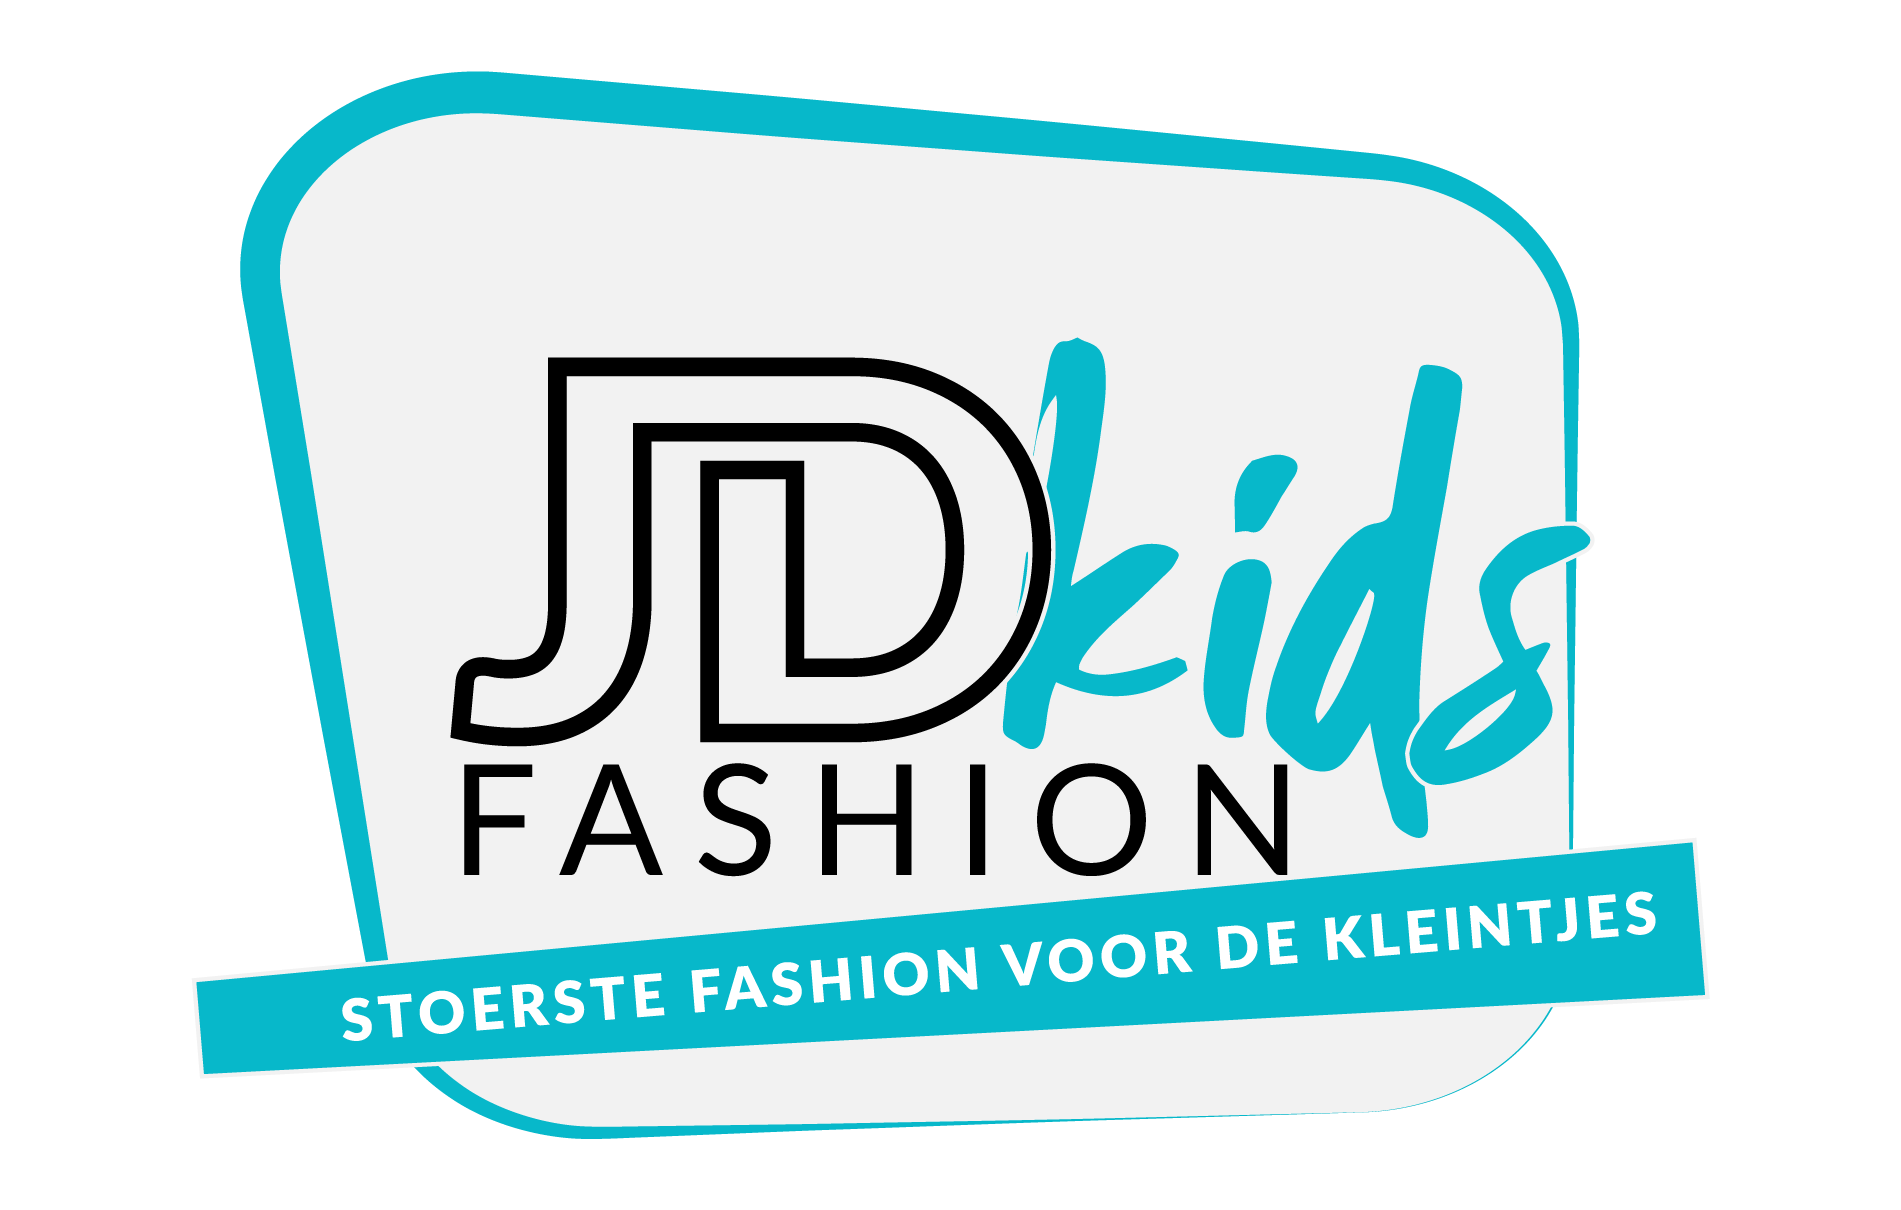 JD Kids Fashion Logo